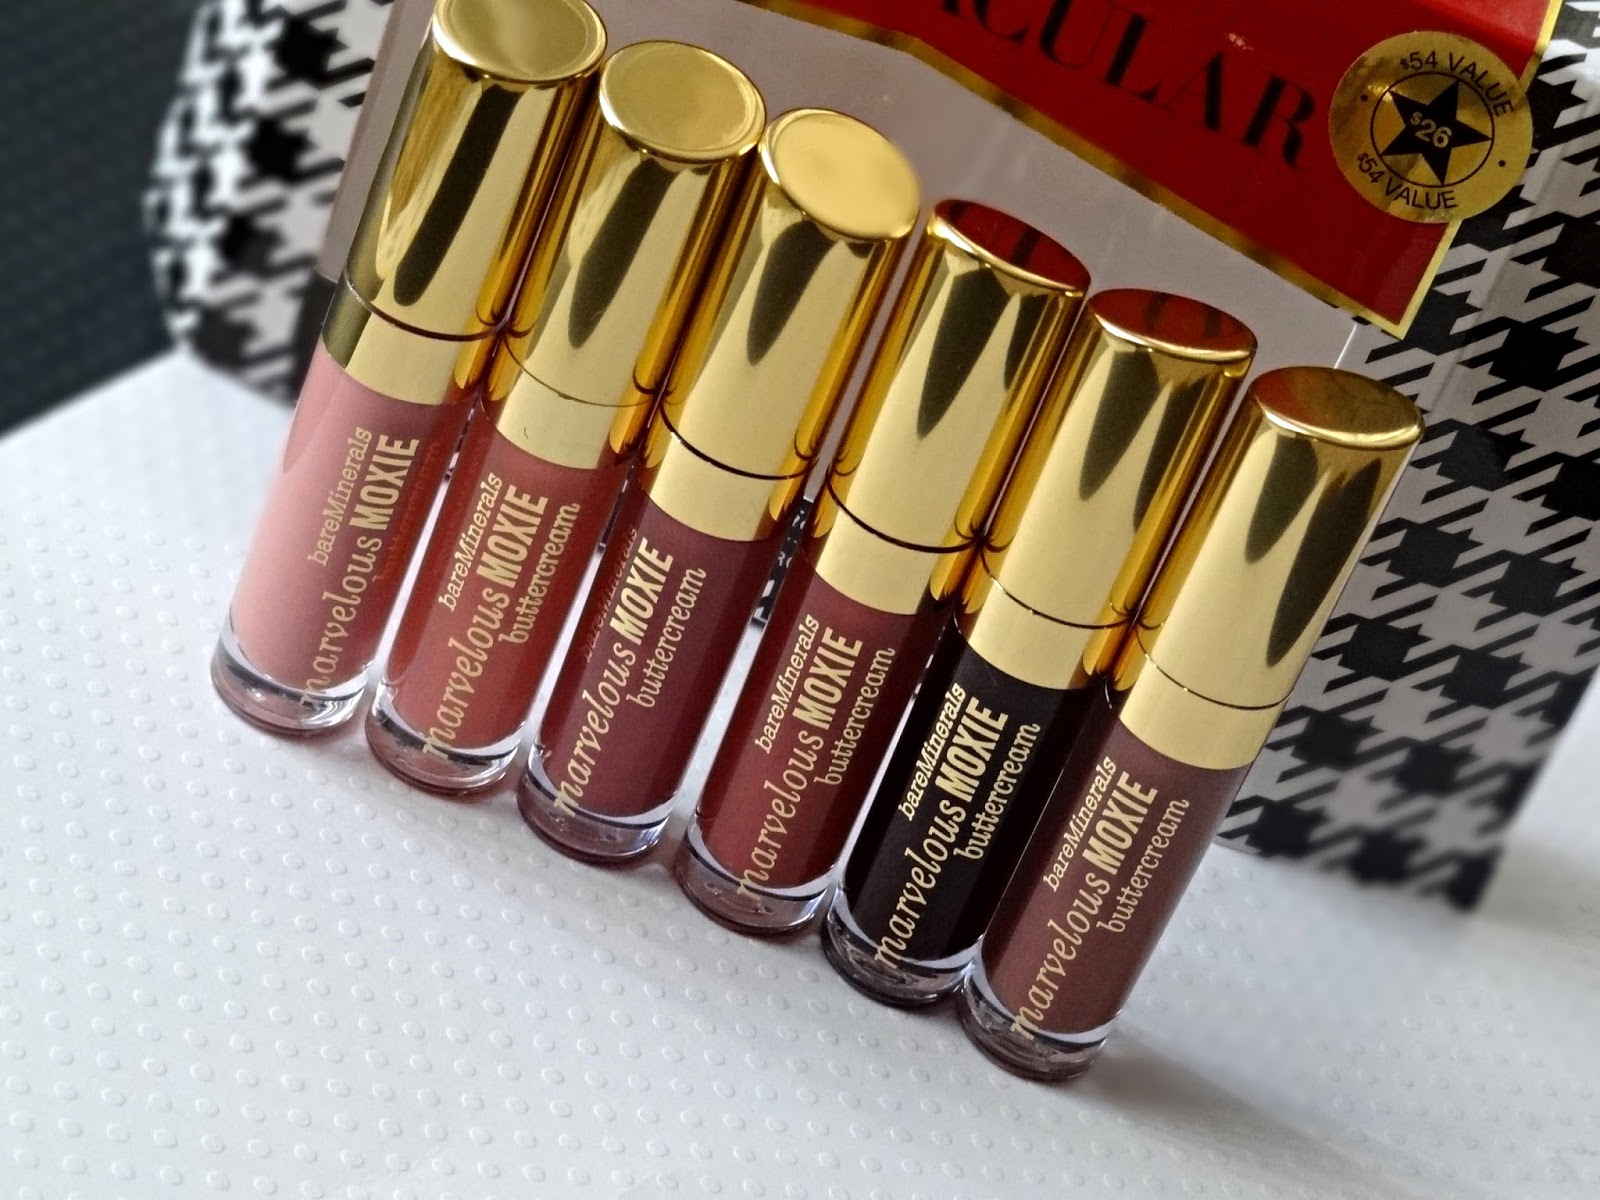 bare minerals Lip Spectacular 6 piece marvelous moxie butter cream Lip gloss collection